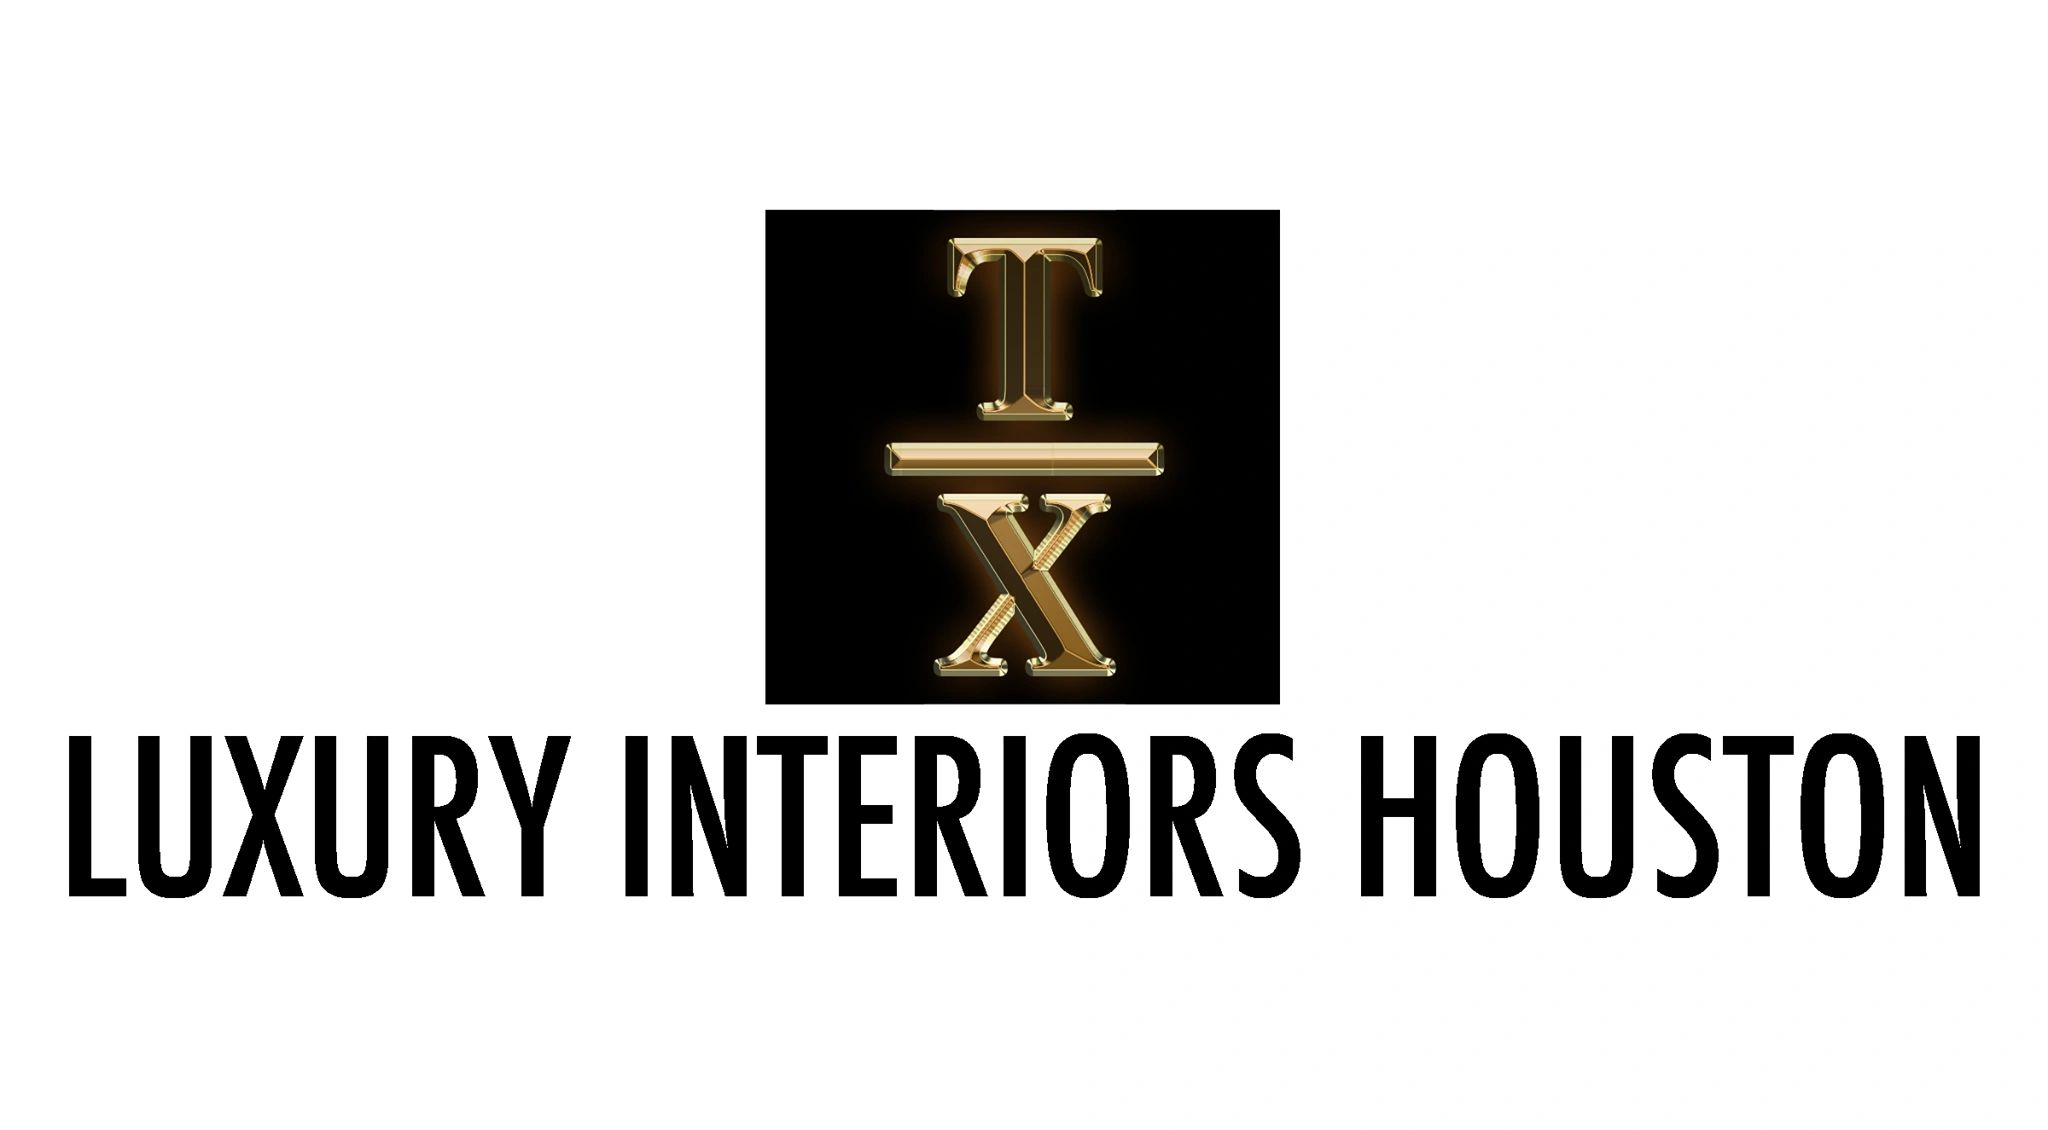 "{""blocks"":[{""key"":""cn8ev"",""text"":""Custom Logo Graphic Design for Luxury Interiors Houston (Houston, Tx)"",""type"":""unstyled"",""depth"":0,""inlineStyleRanges"":[],""entityRanges"":[],""data"":{}}],""entityMap"":{}}"